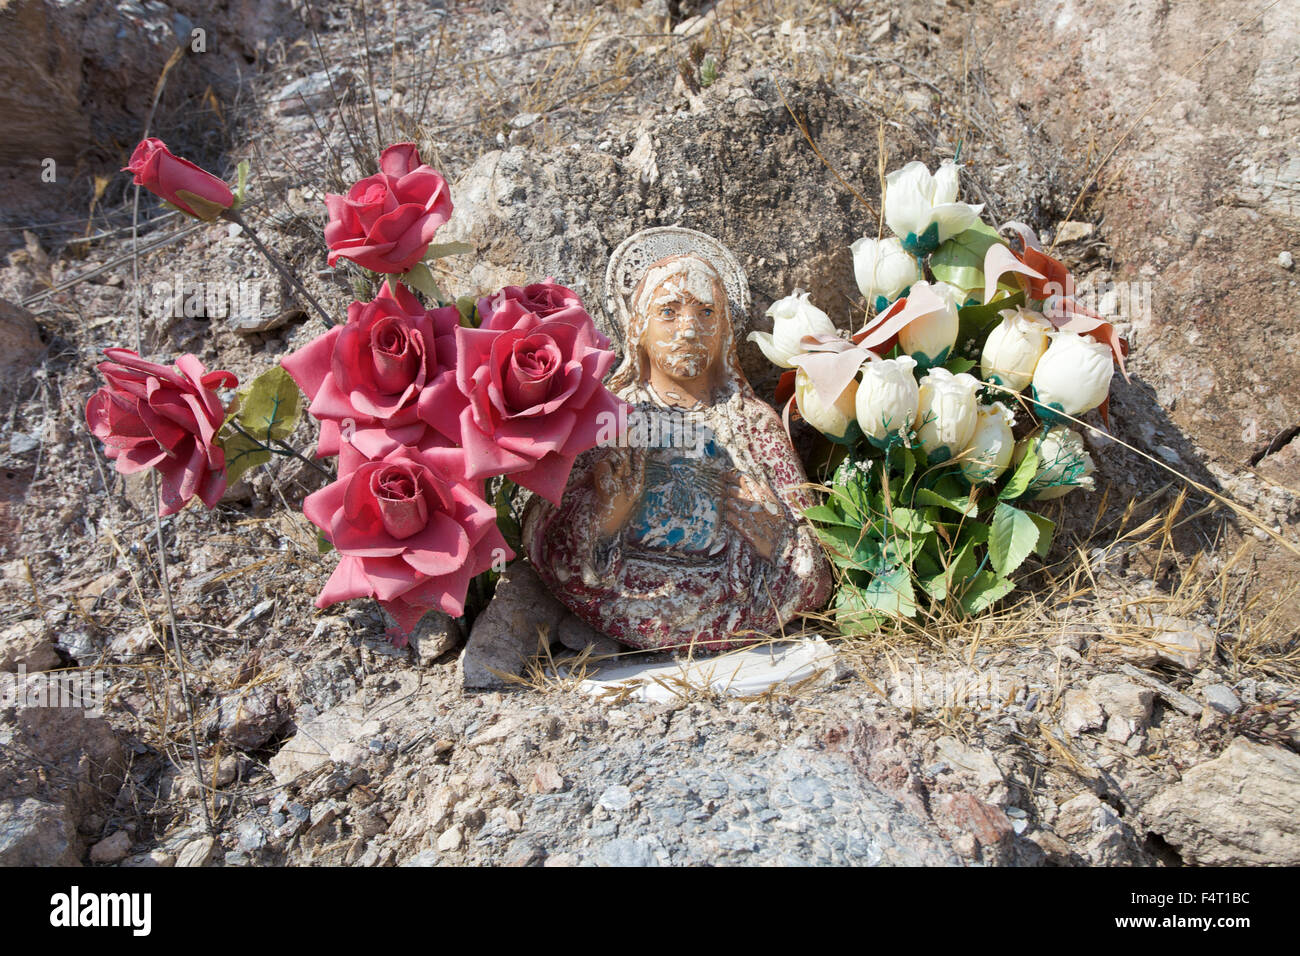 A religious shrine with flowers beside a road in Spain. Stock Photo